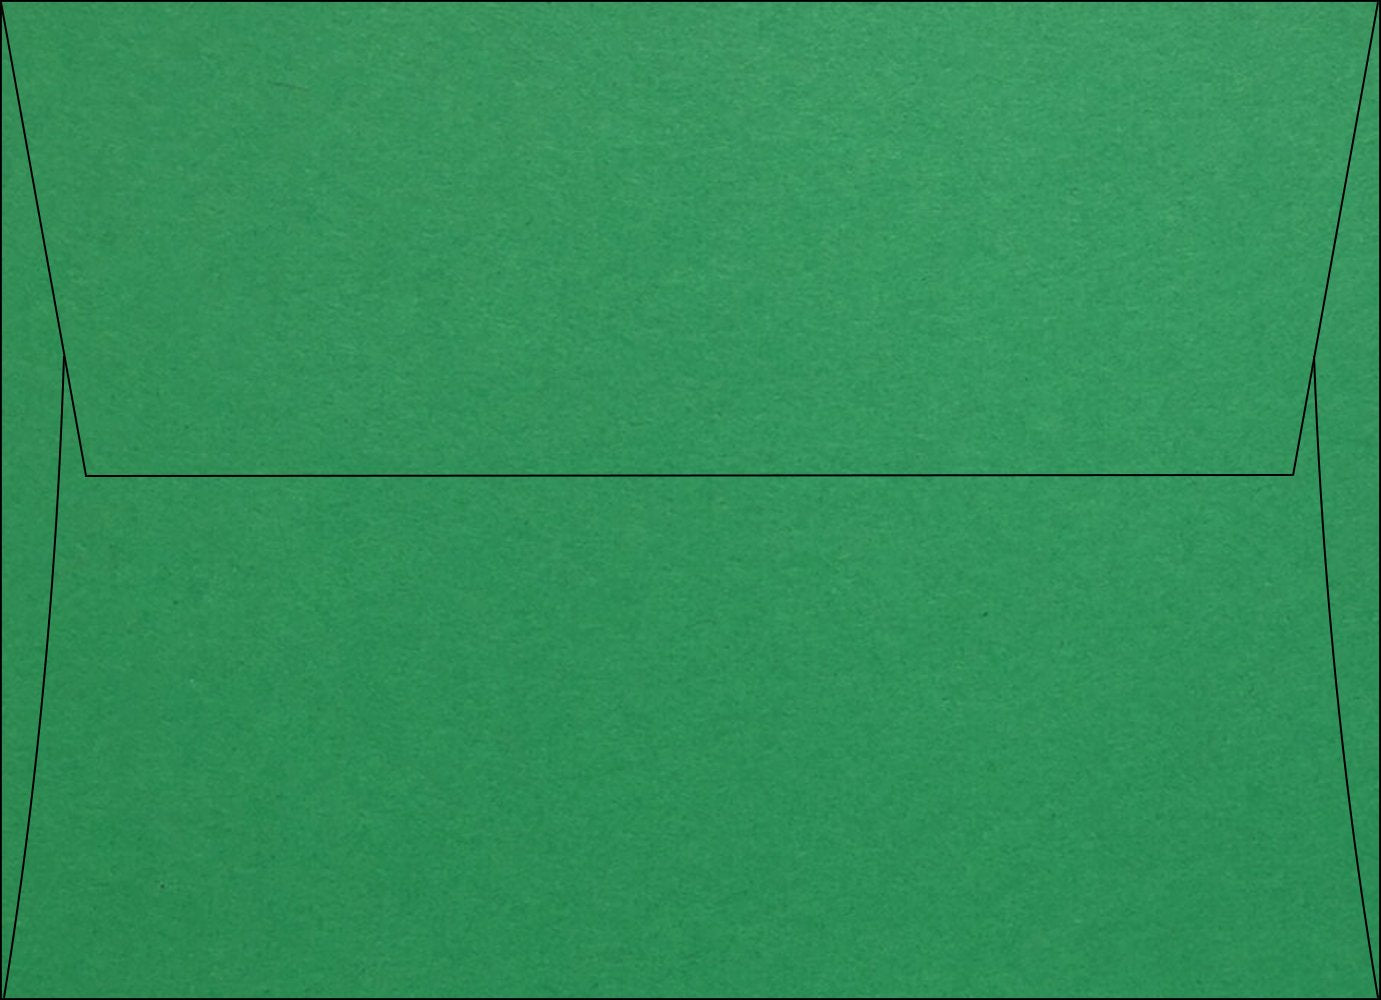 Glo-Tone Envelopes - Square Flap